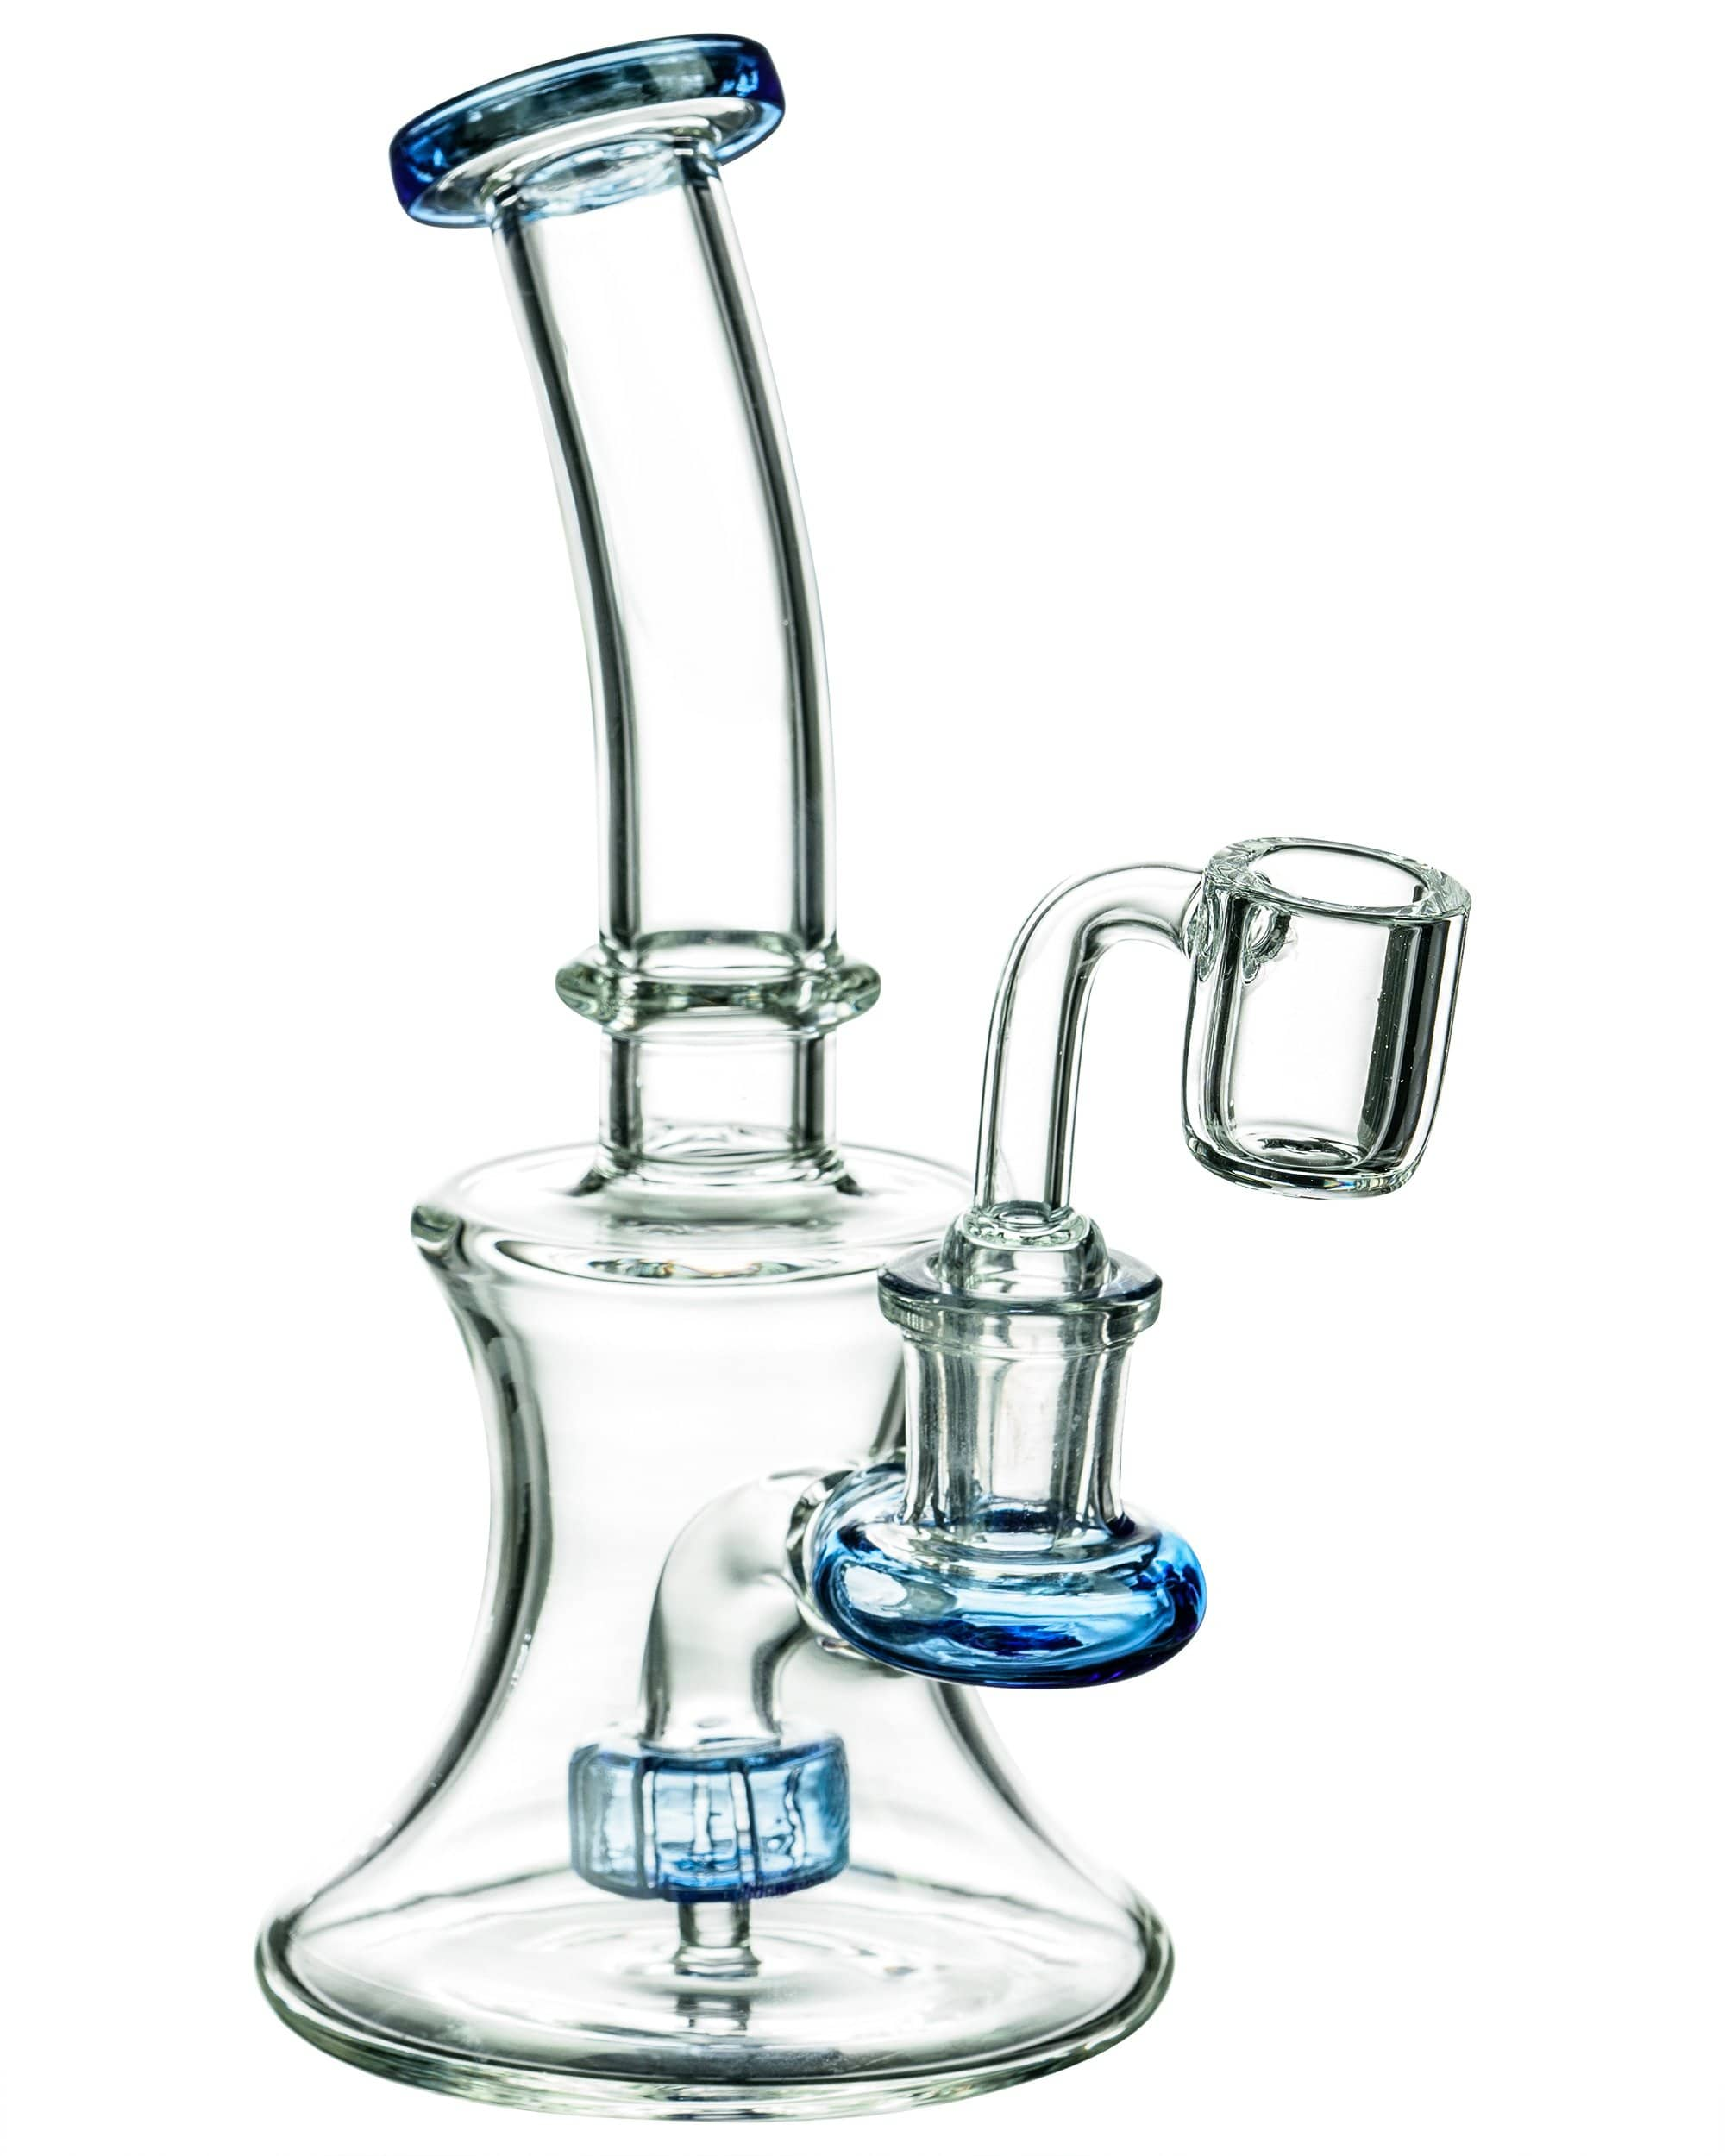 LA Pipes Hourglass Dab Rig With Colored Accents